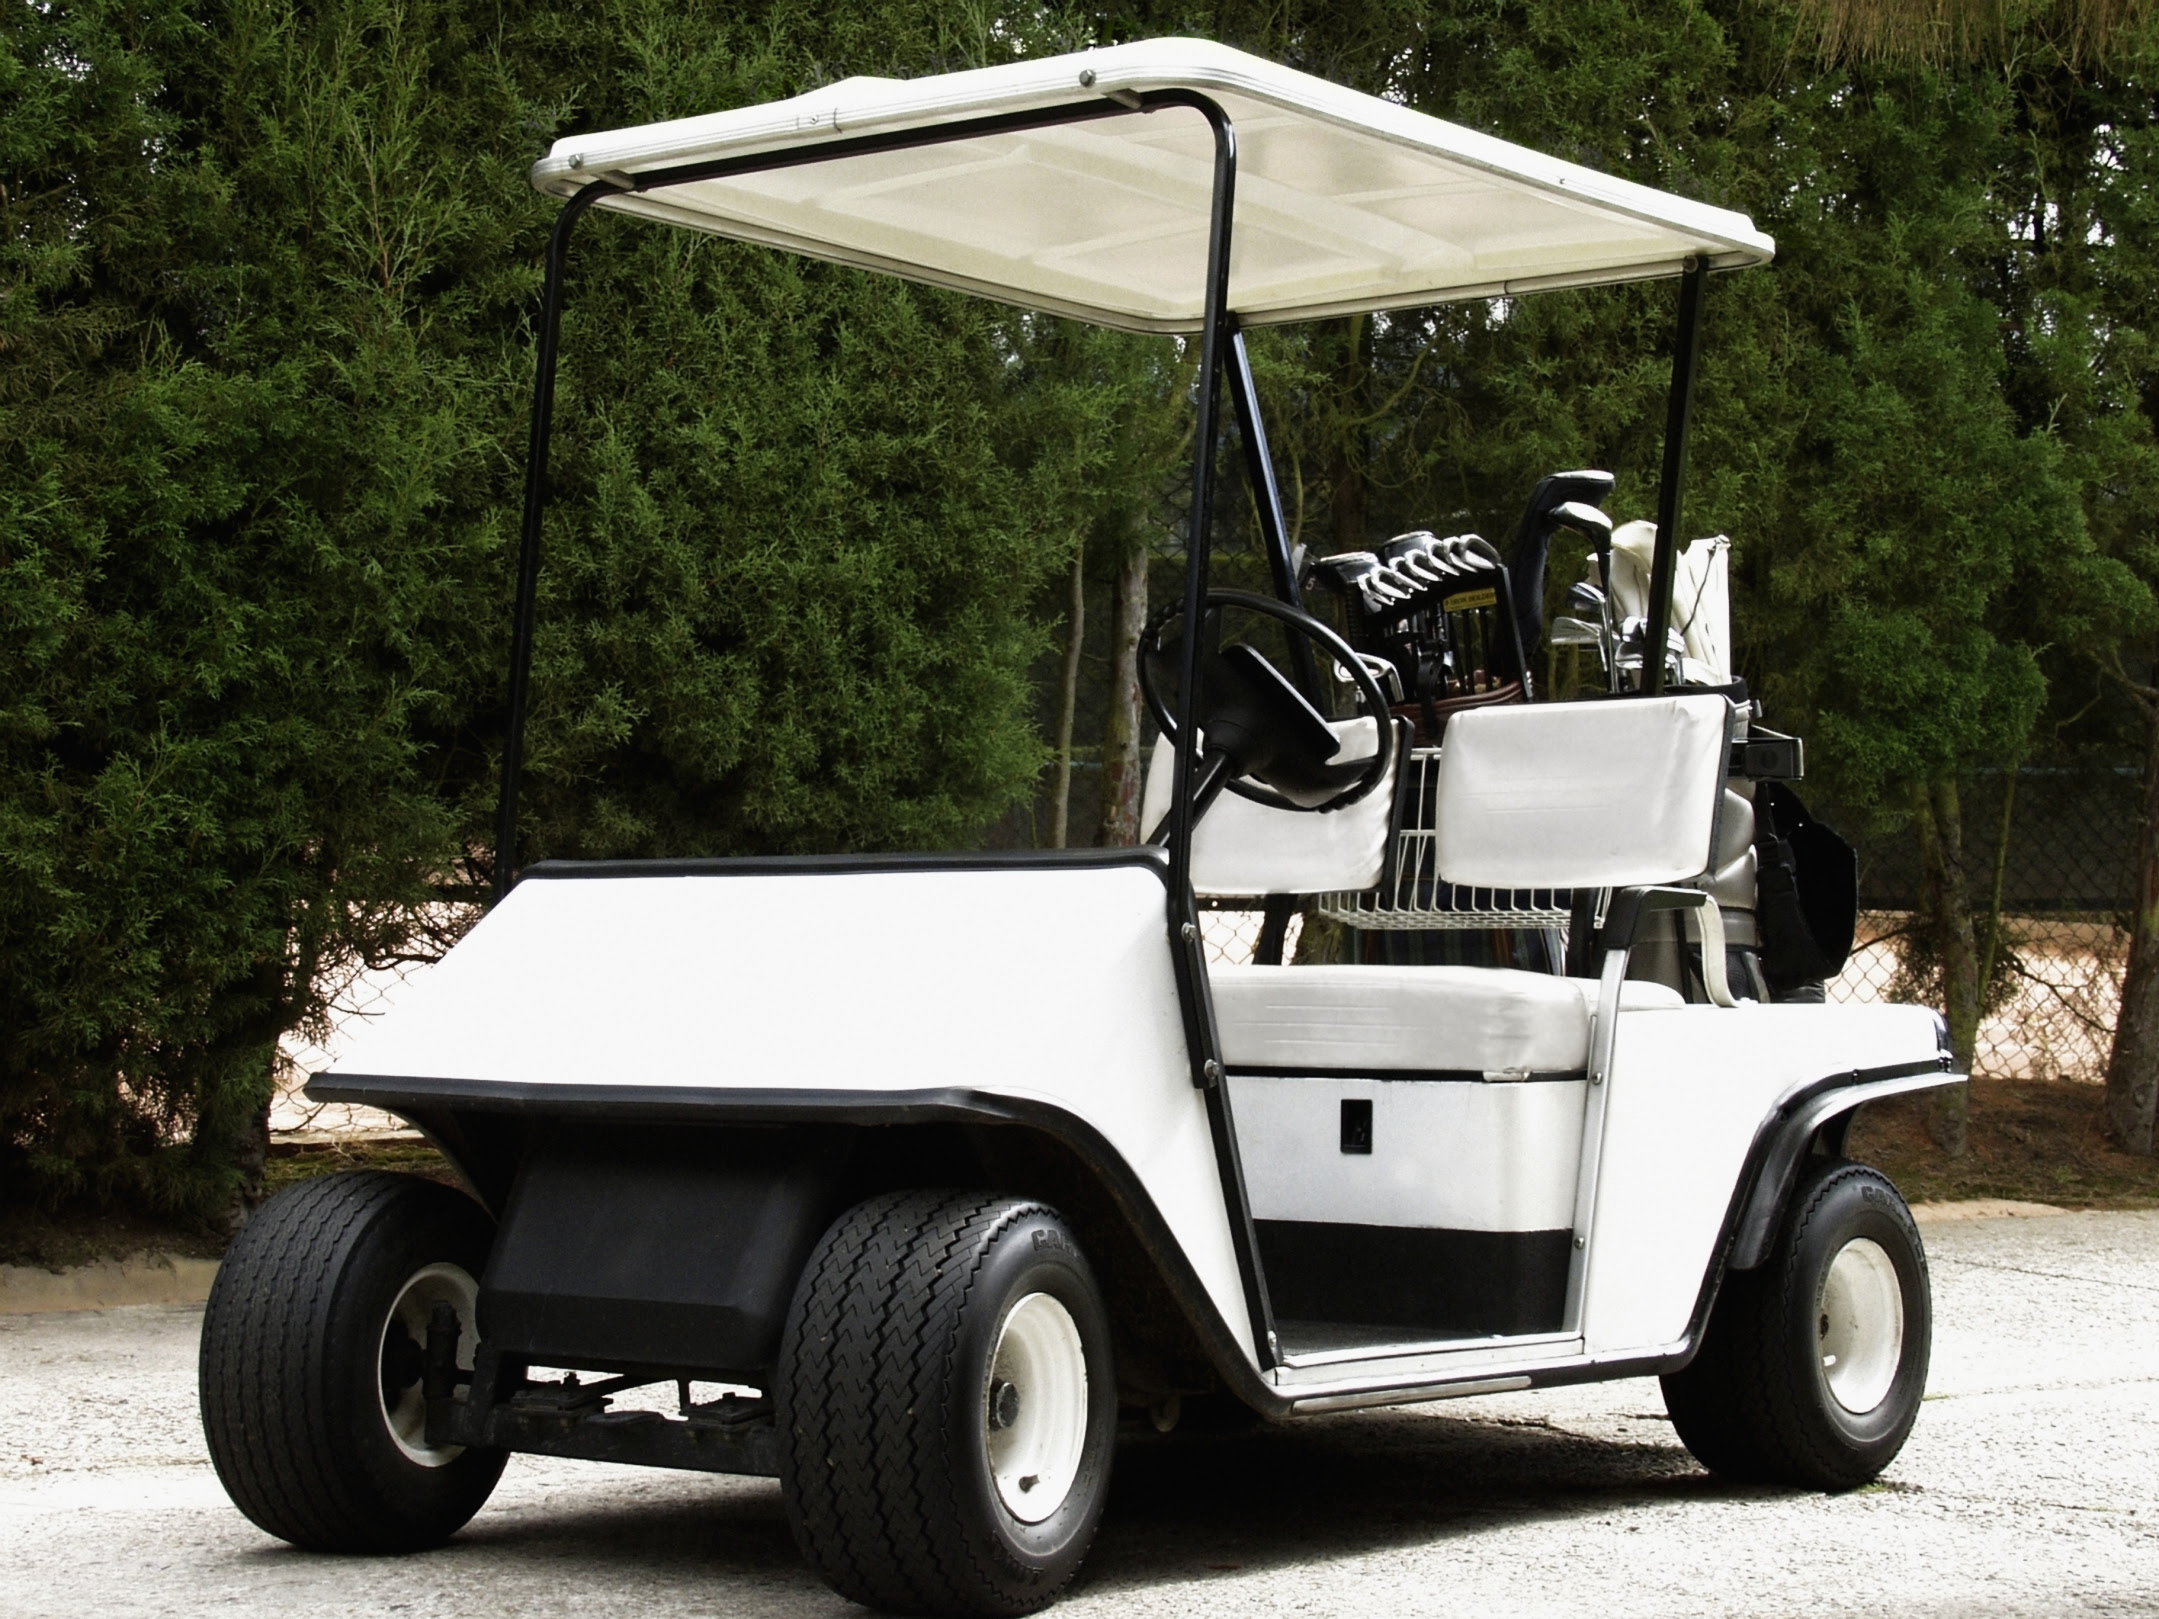 How To Make A Yamaha Golf Cart Faster